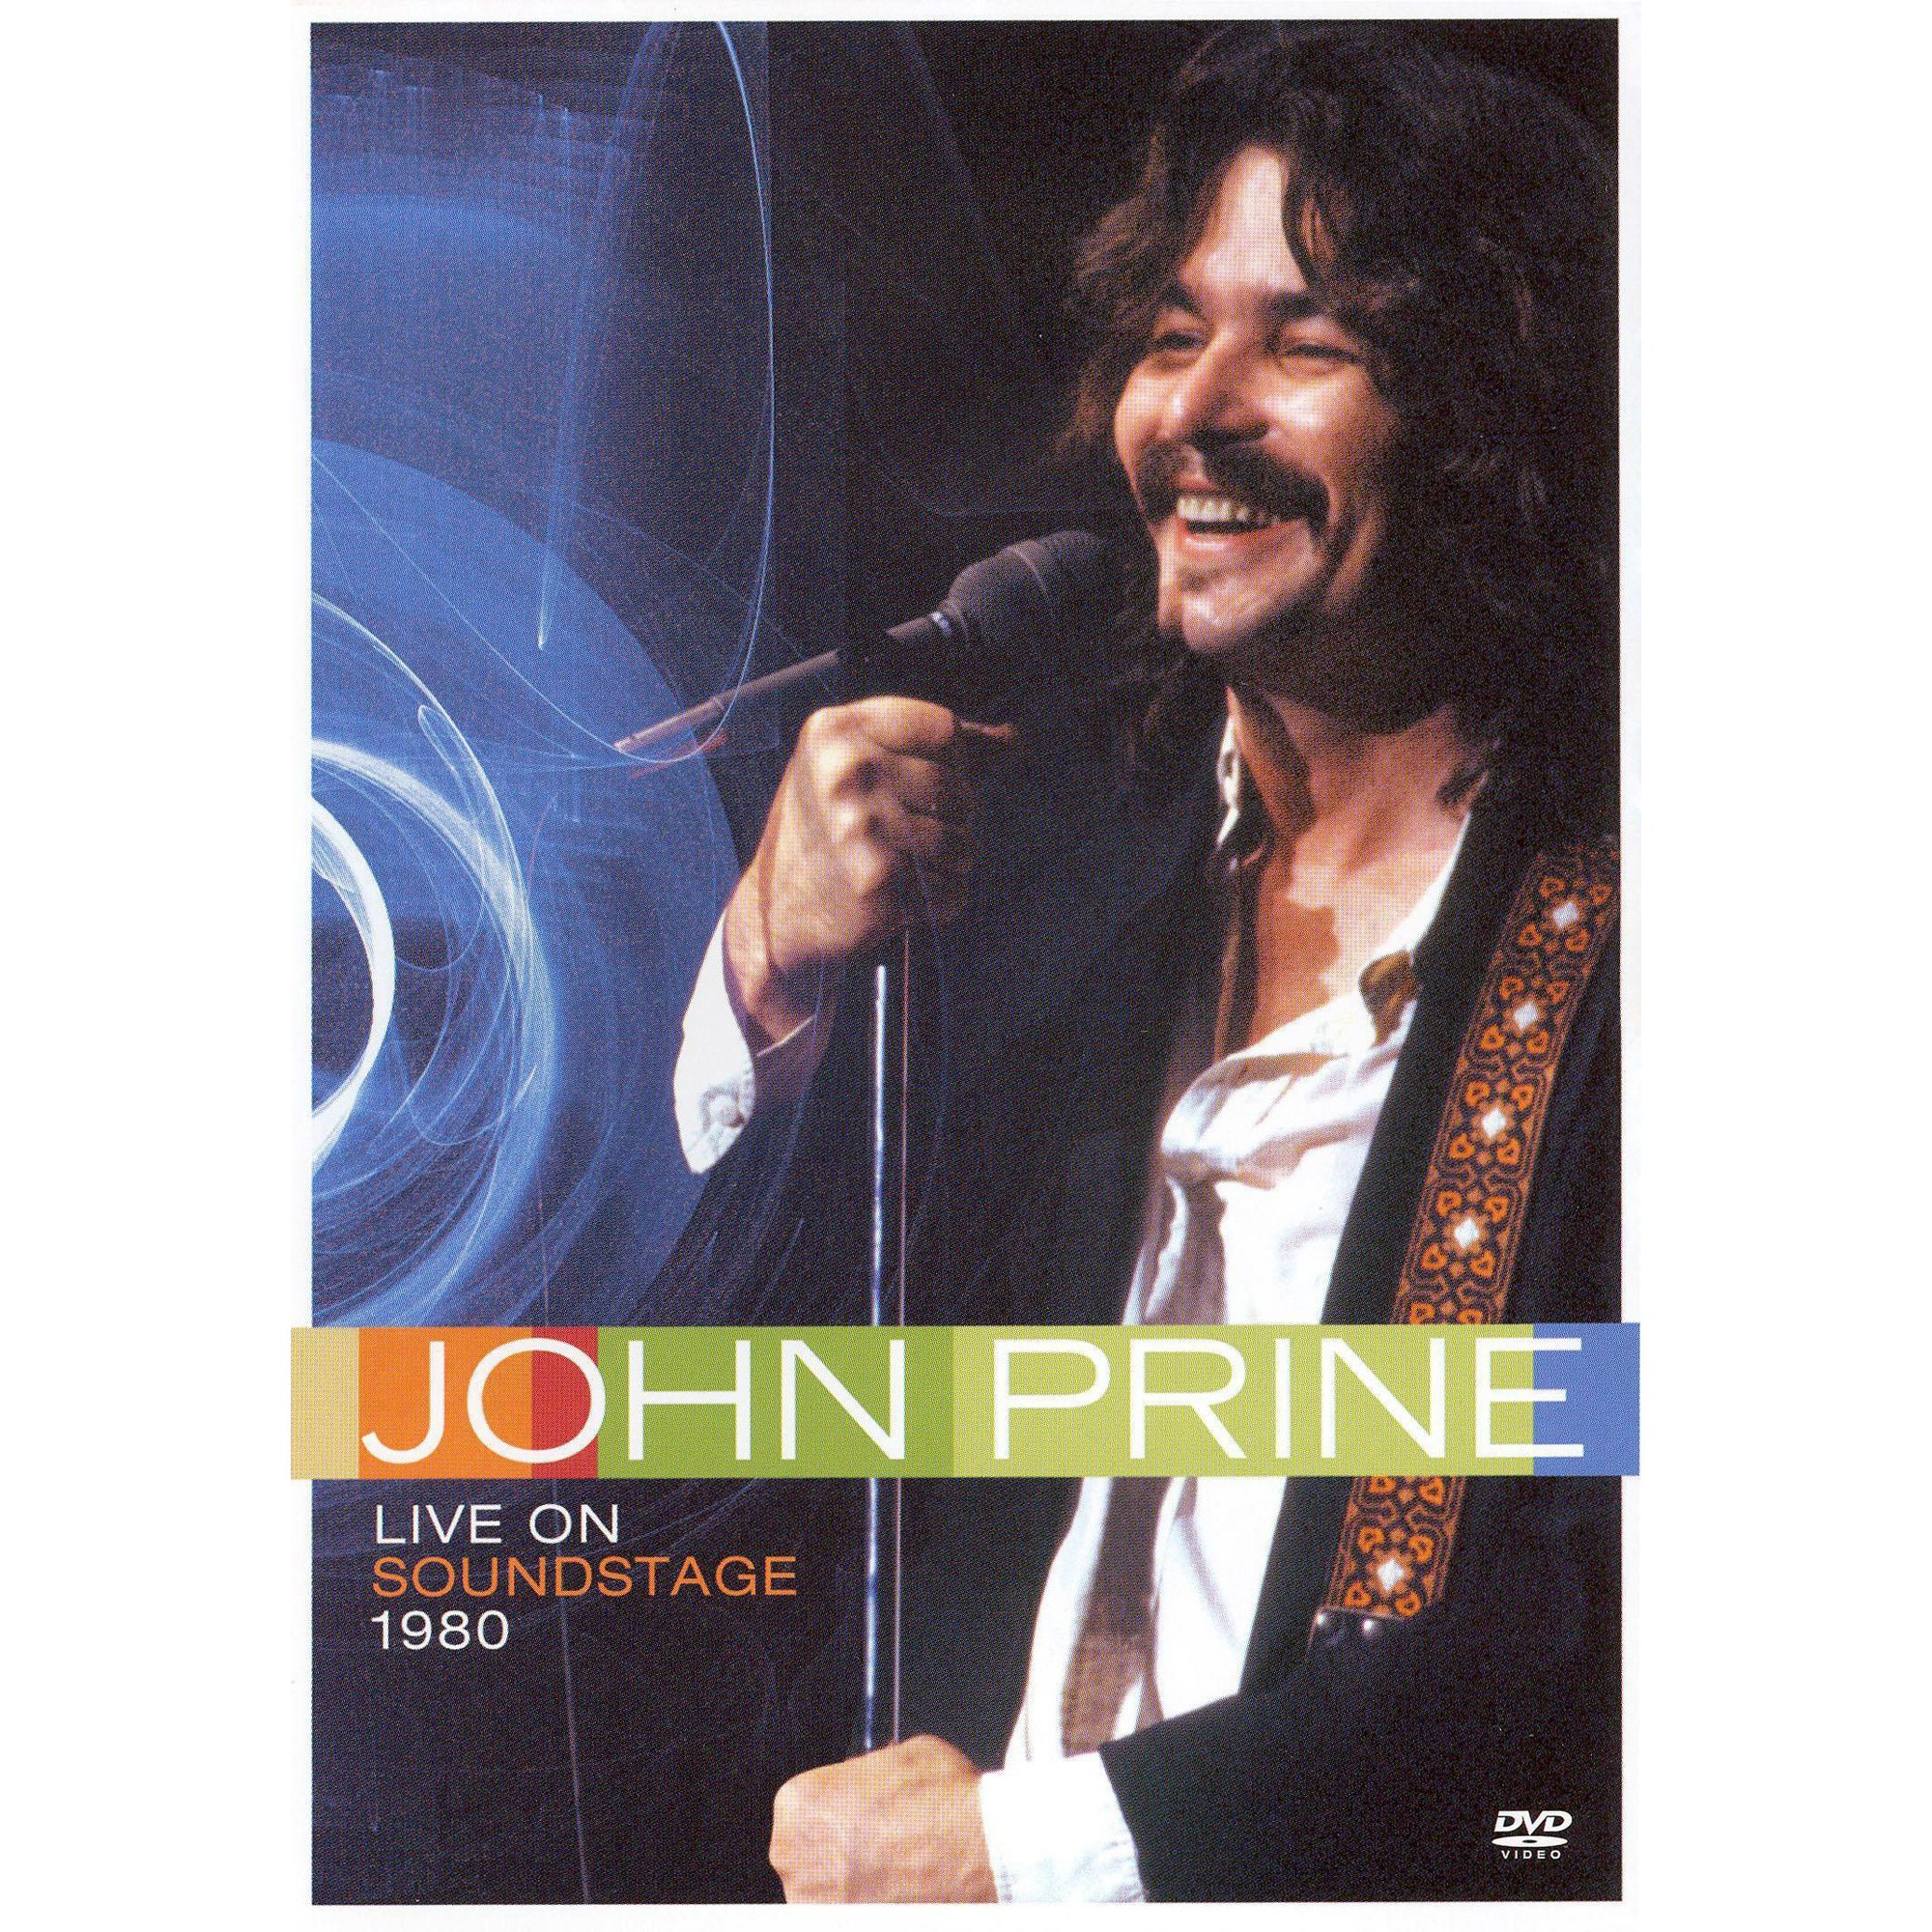 Soundstage:John prine (Dvd) | Products | Pinterest | Products